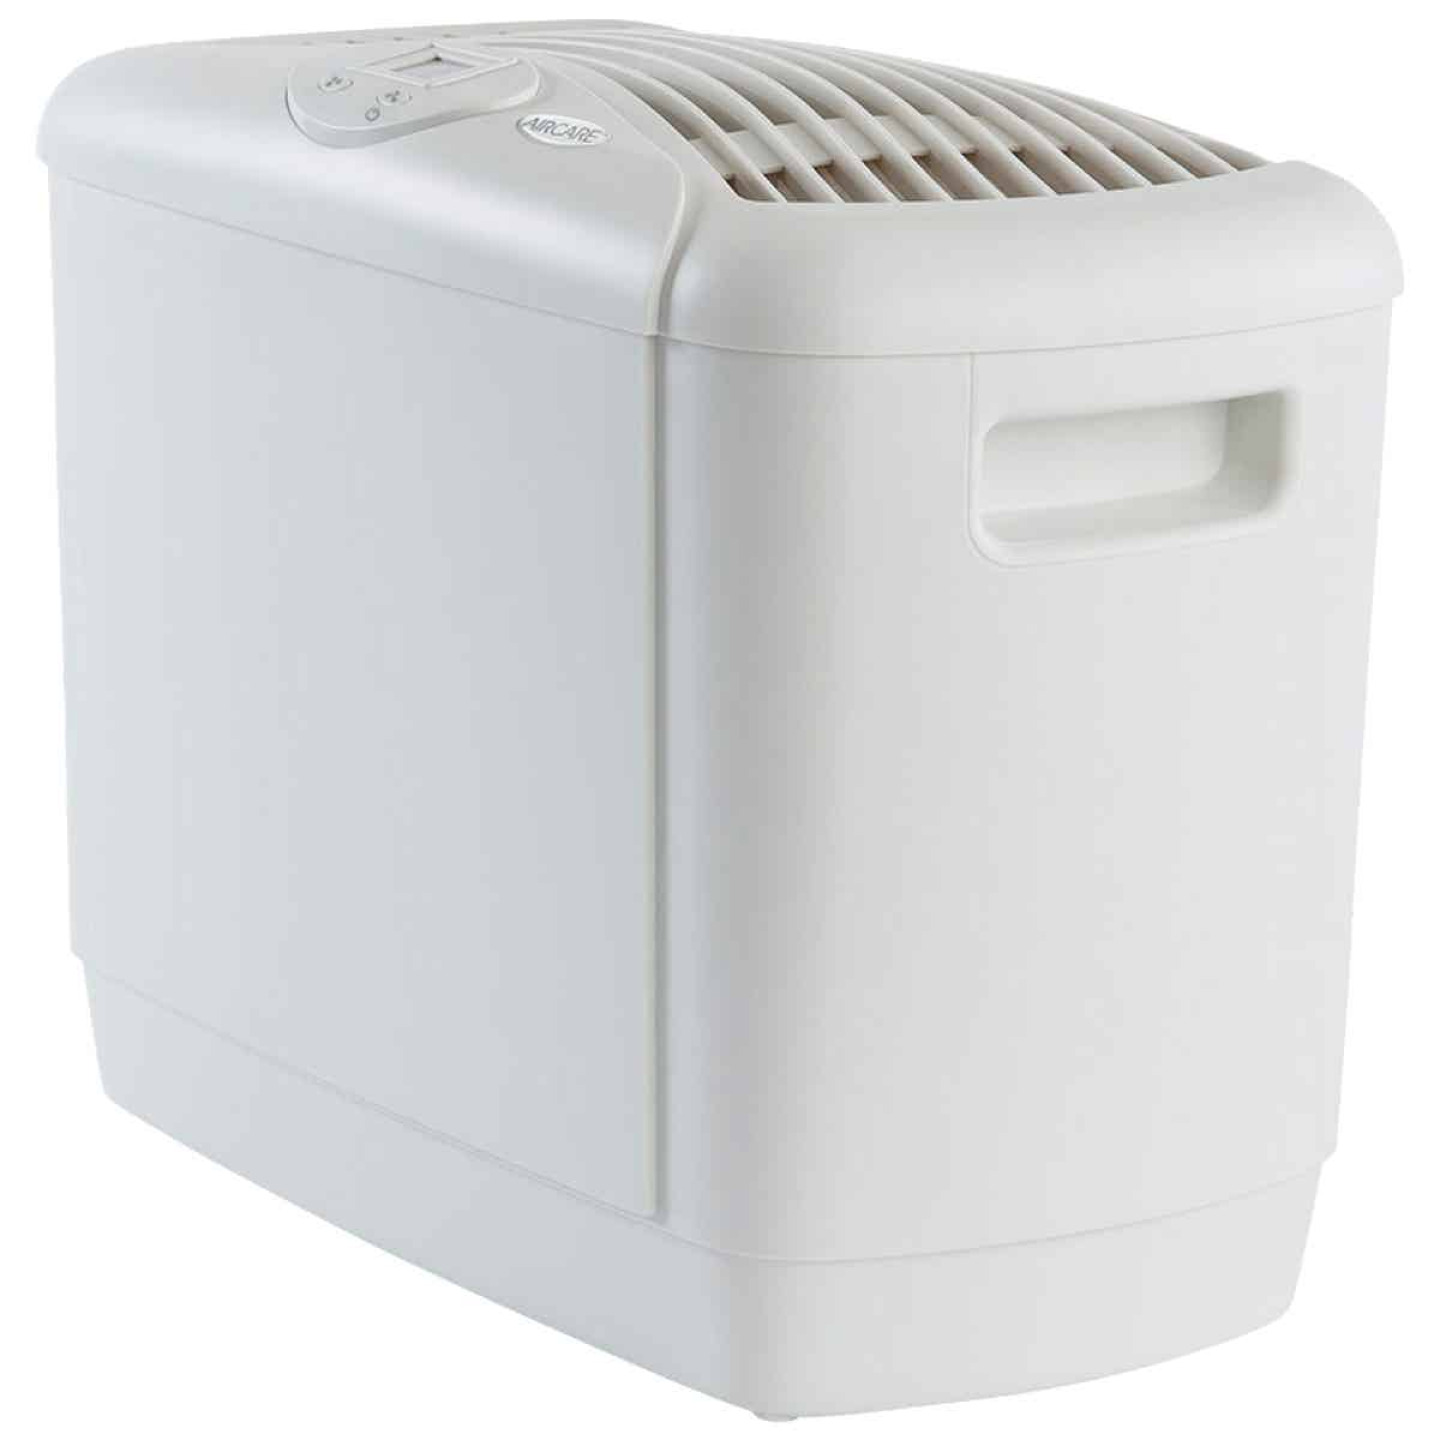 AirCare 3 Gal. Capacity 1250 Sq. Ft. Mini Console Evaporative Humidifier Image 3